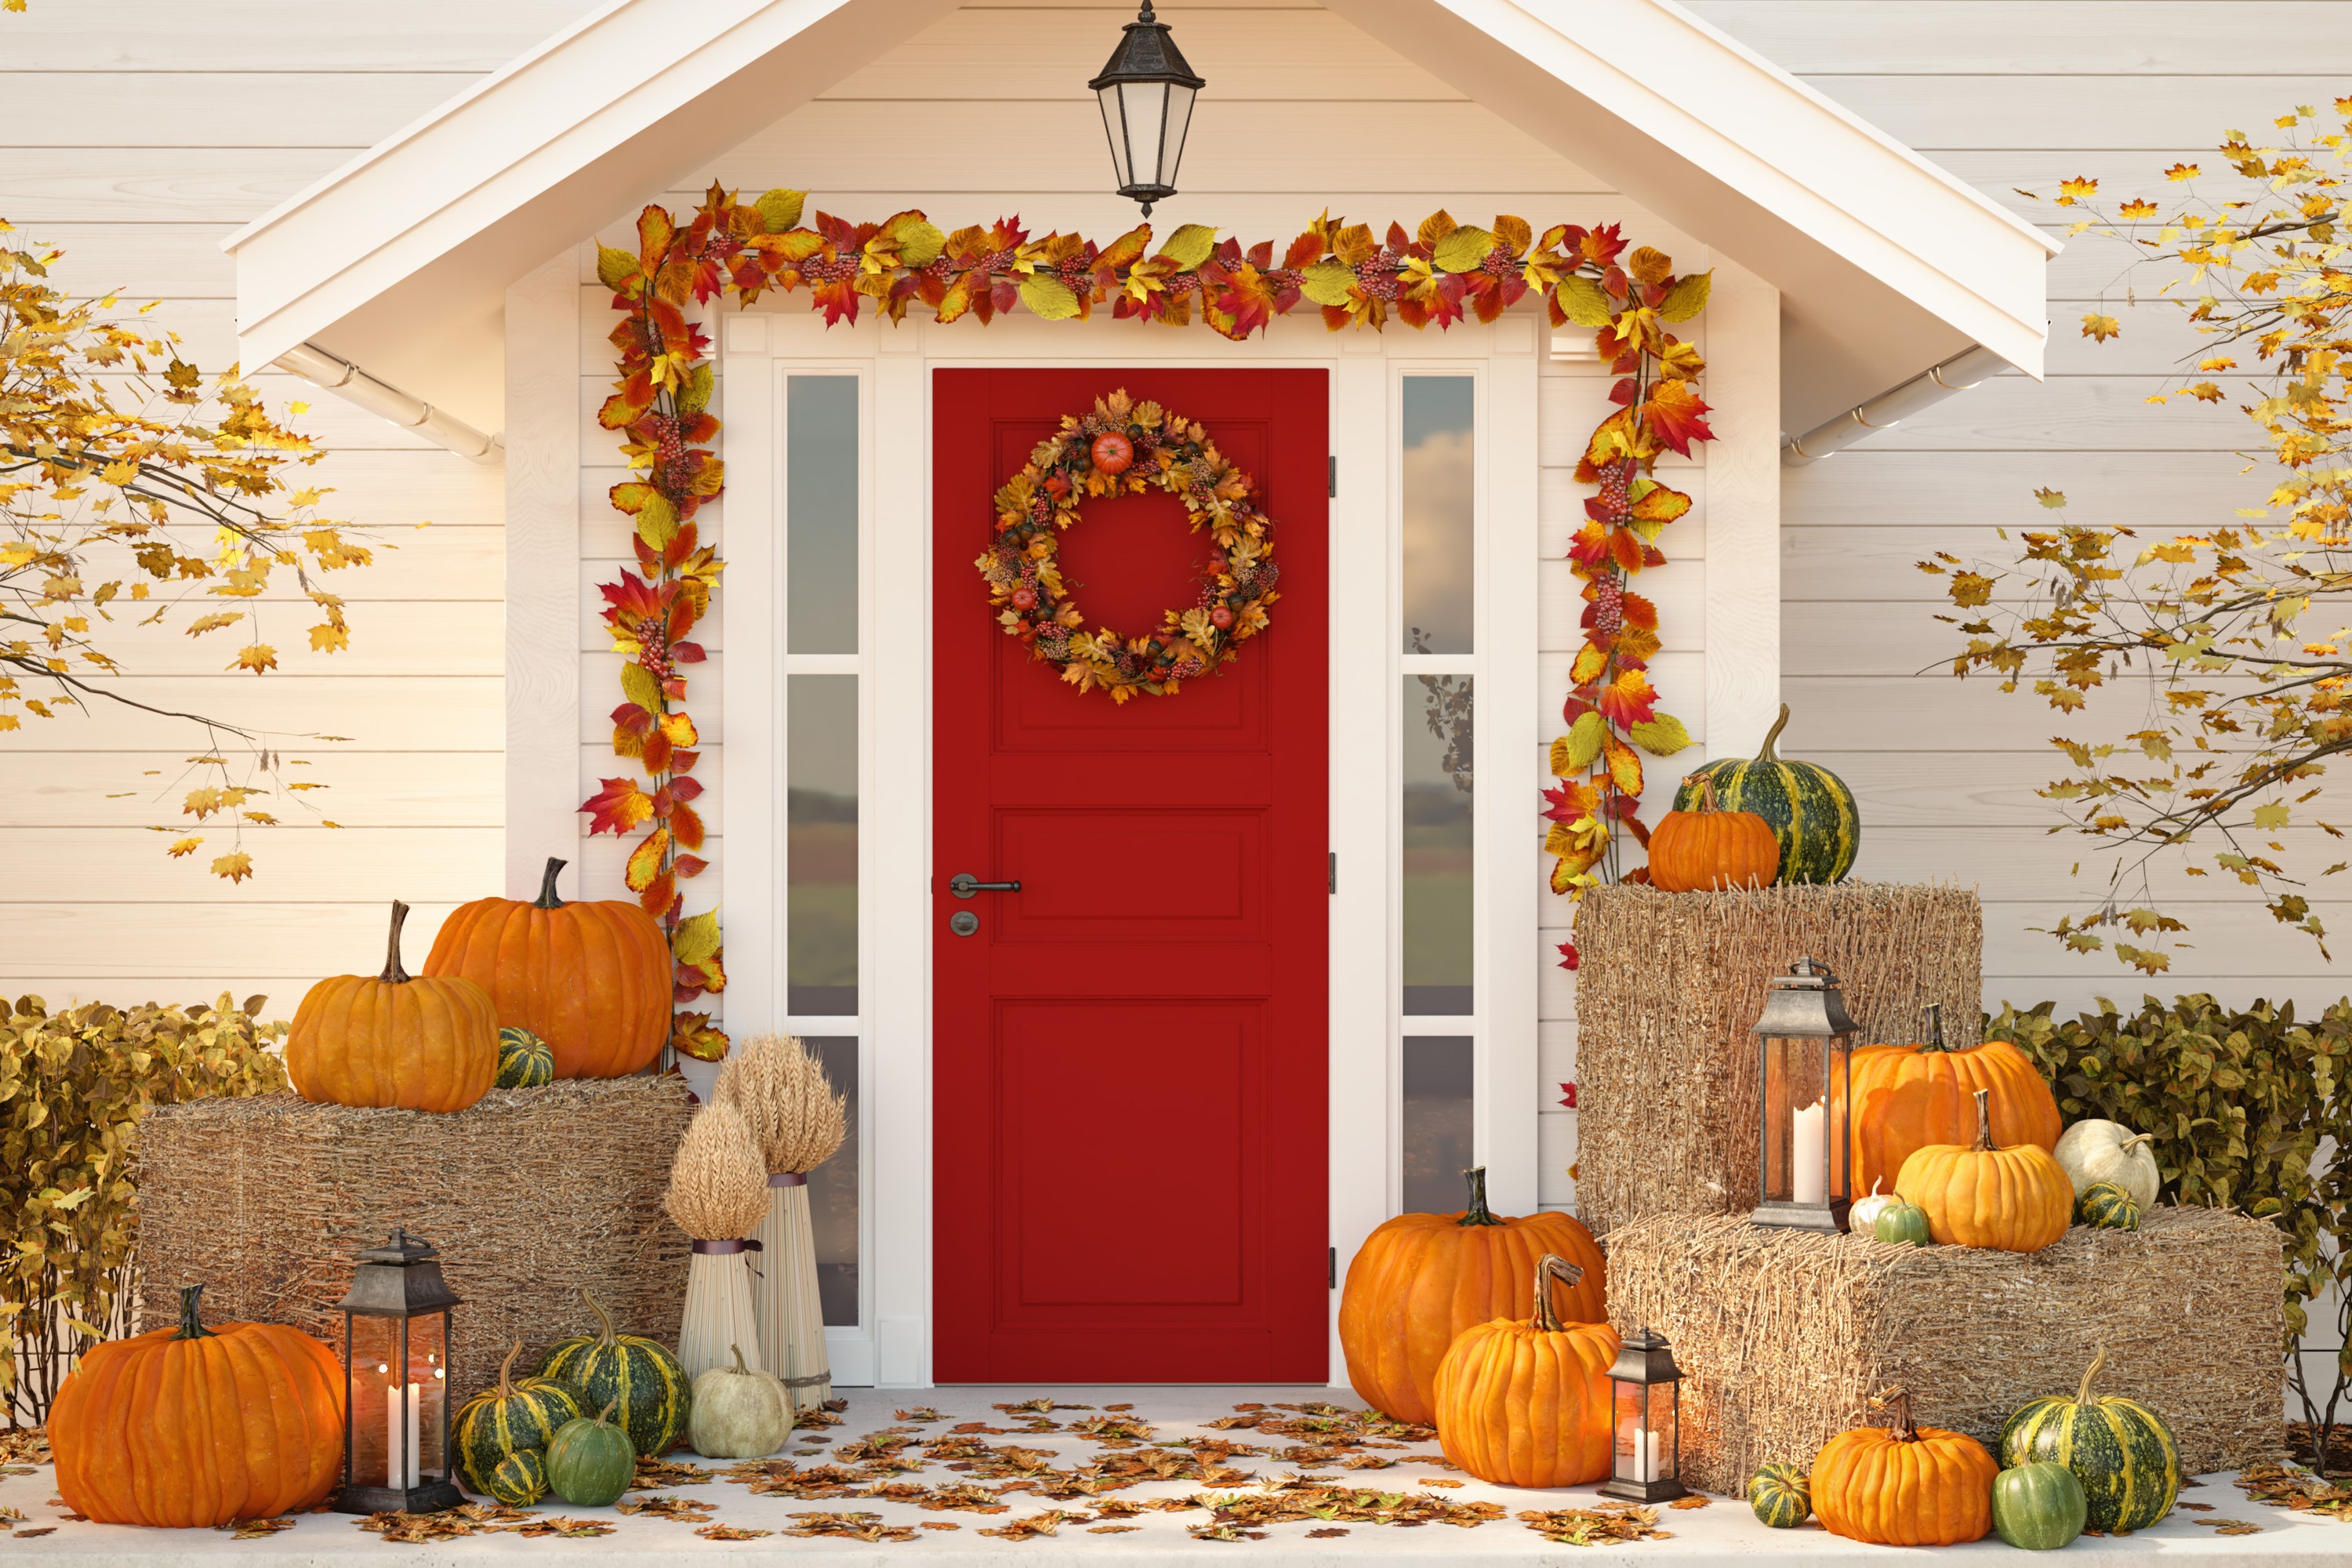 If you're in charge of the Thanksgiving festivities this year, you'll want your house to be perfect. Here are some amazing DIY Thanksgiving door garland to welcome your guests.